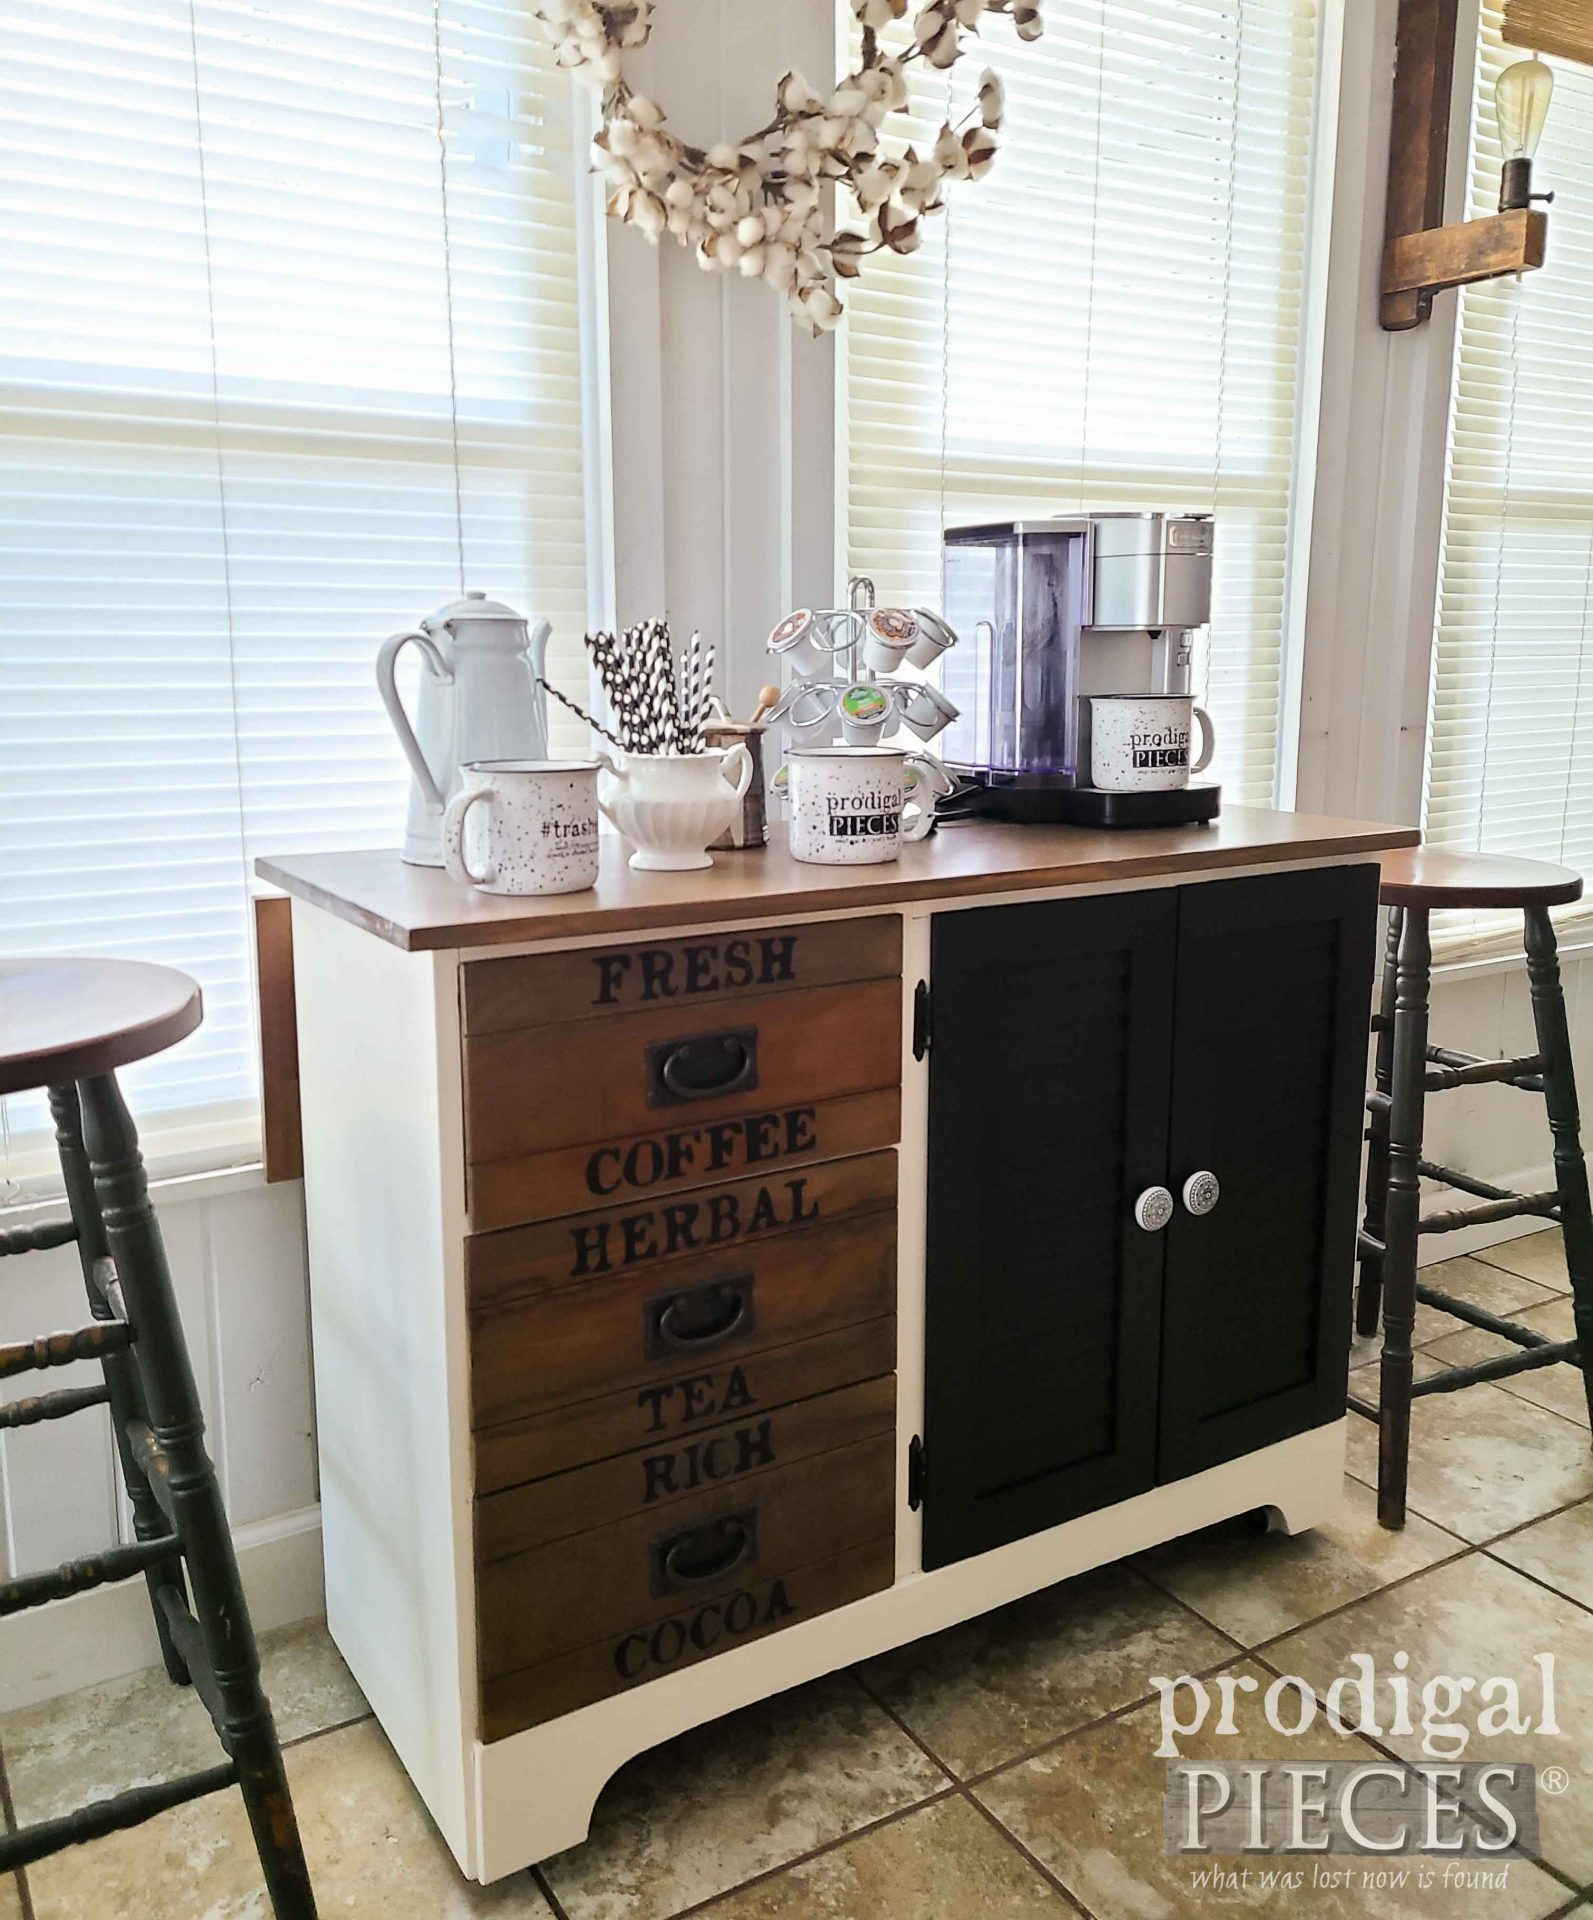 Rustic Farmhouse Coffee Bar by Larissa of Prodigal Pieces | prodigalpieces.com #prodigalpieces #diy #home #furniture #entertaining #kitchen #homedecor